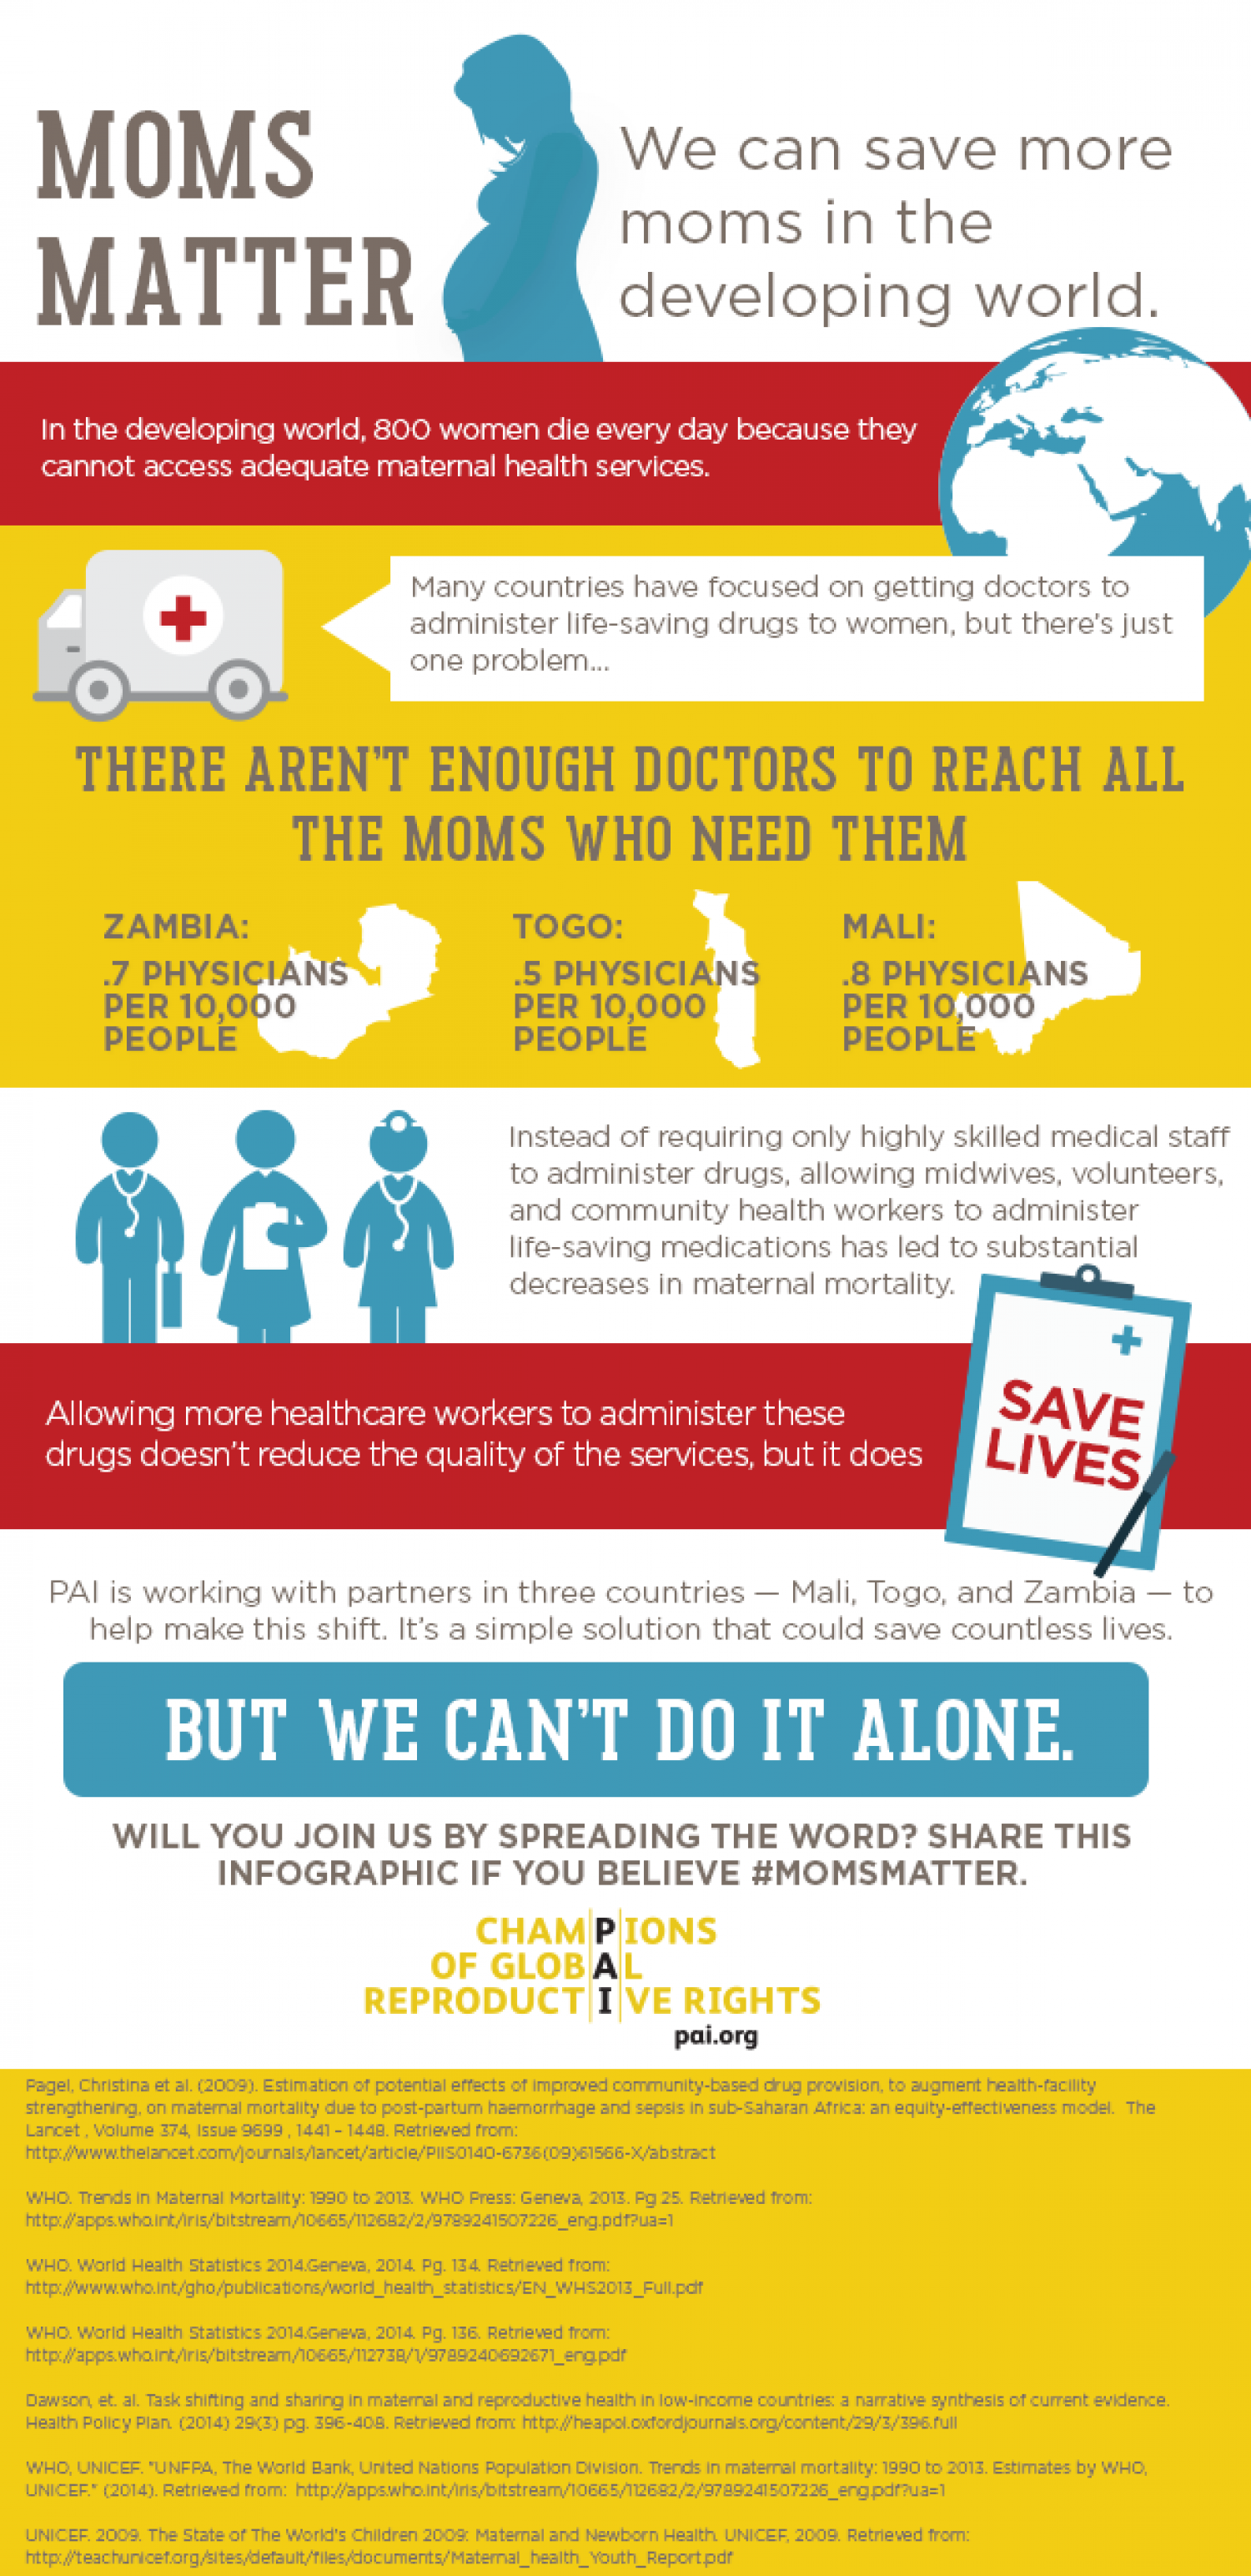 Moms Matter: We Can Save More Moms in the Developing World Infographic